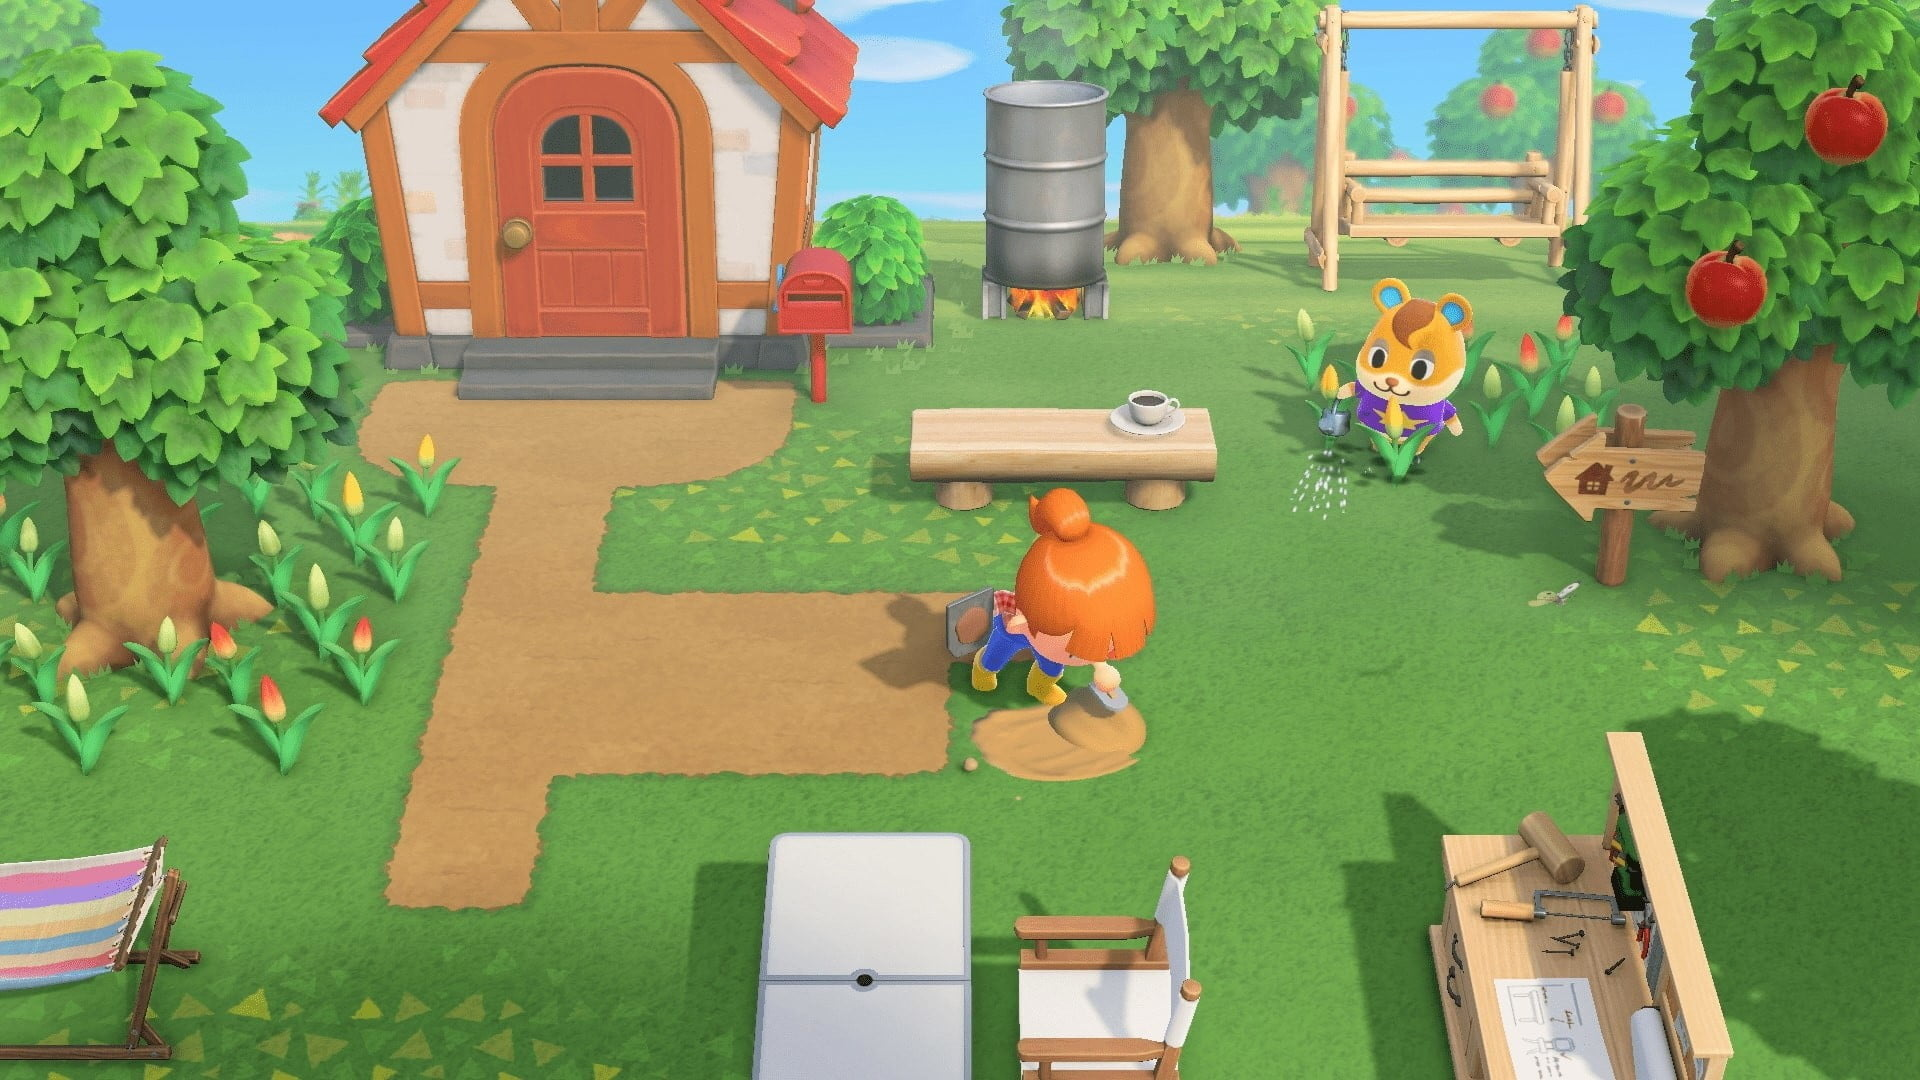 Animal Crossing is one of the best multiplayer games on Nintendo Switch